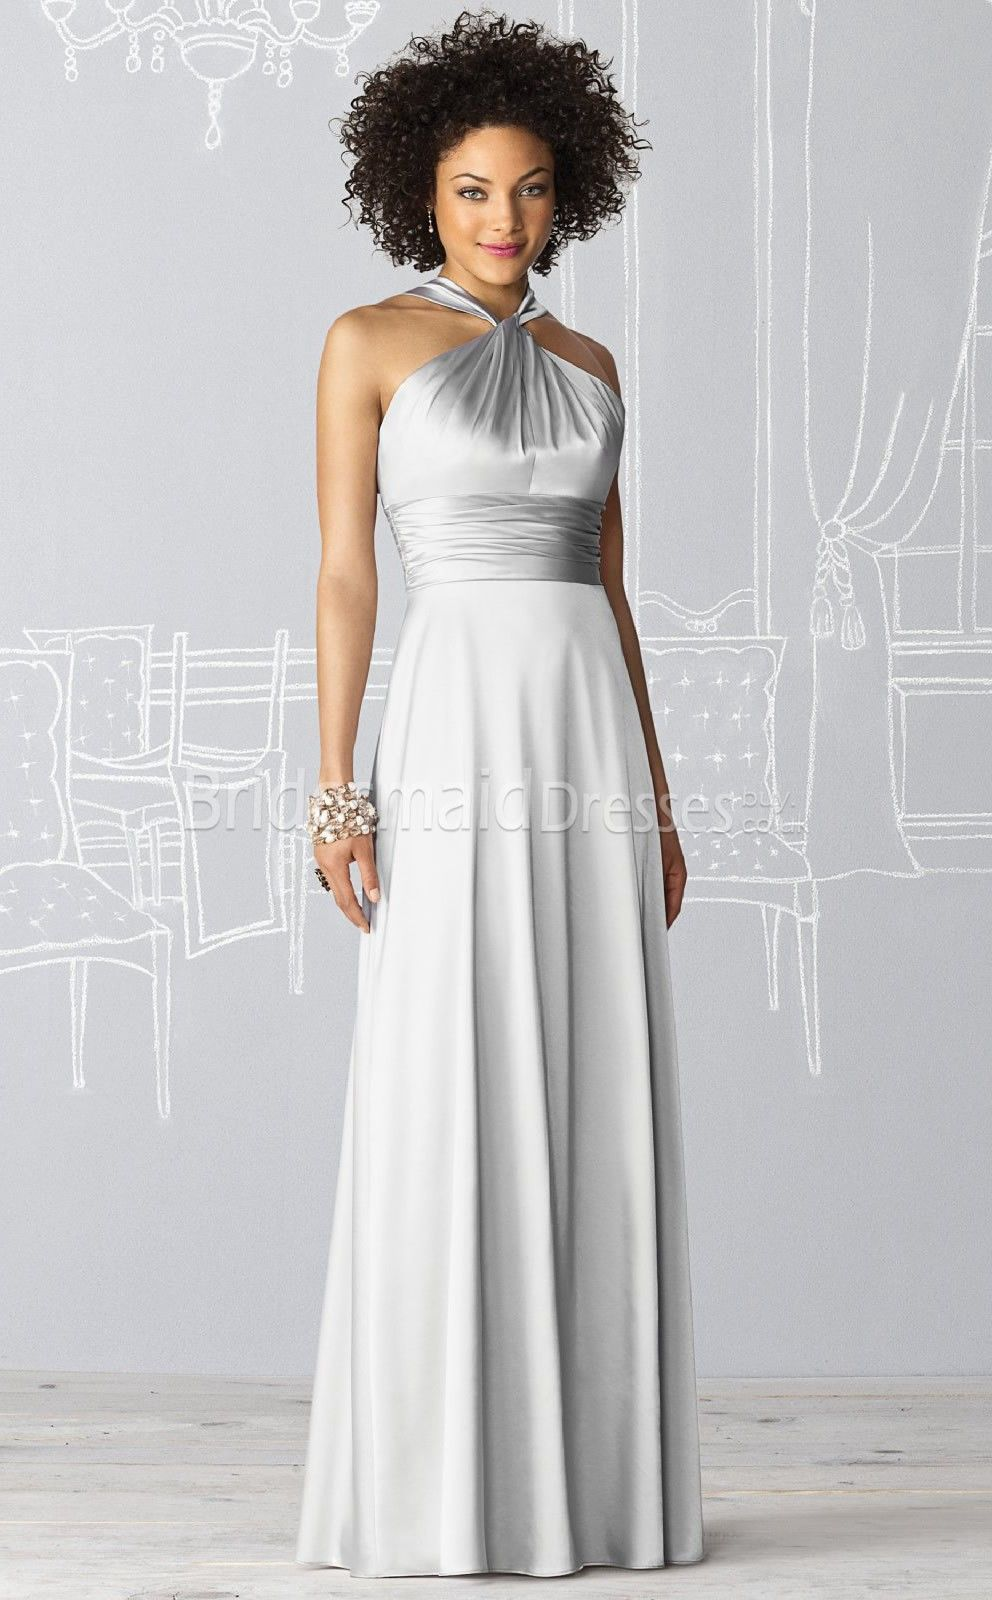 I was thinking long dresses would be too warm but pam said you all buy adorable greysilver bridesmaid dresses at kissydress online pick up this unique cheap simpleelegant a line halter empire floor length silver ombrellifo Images